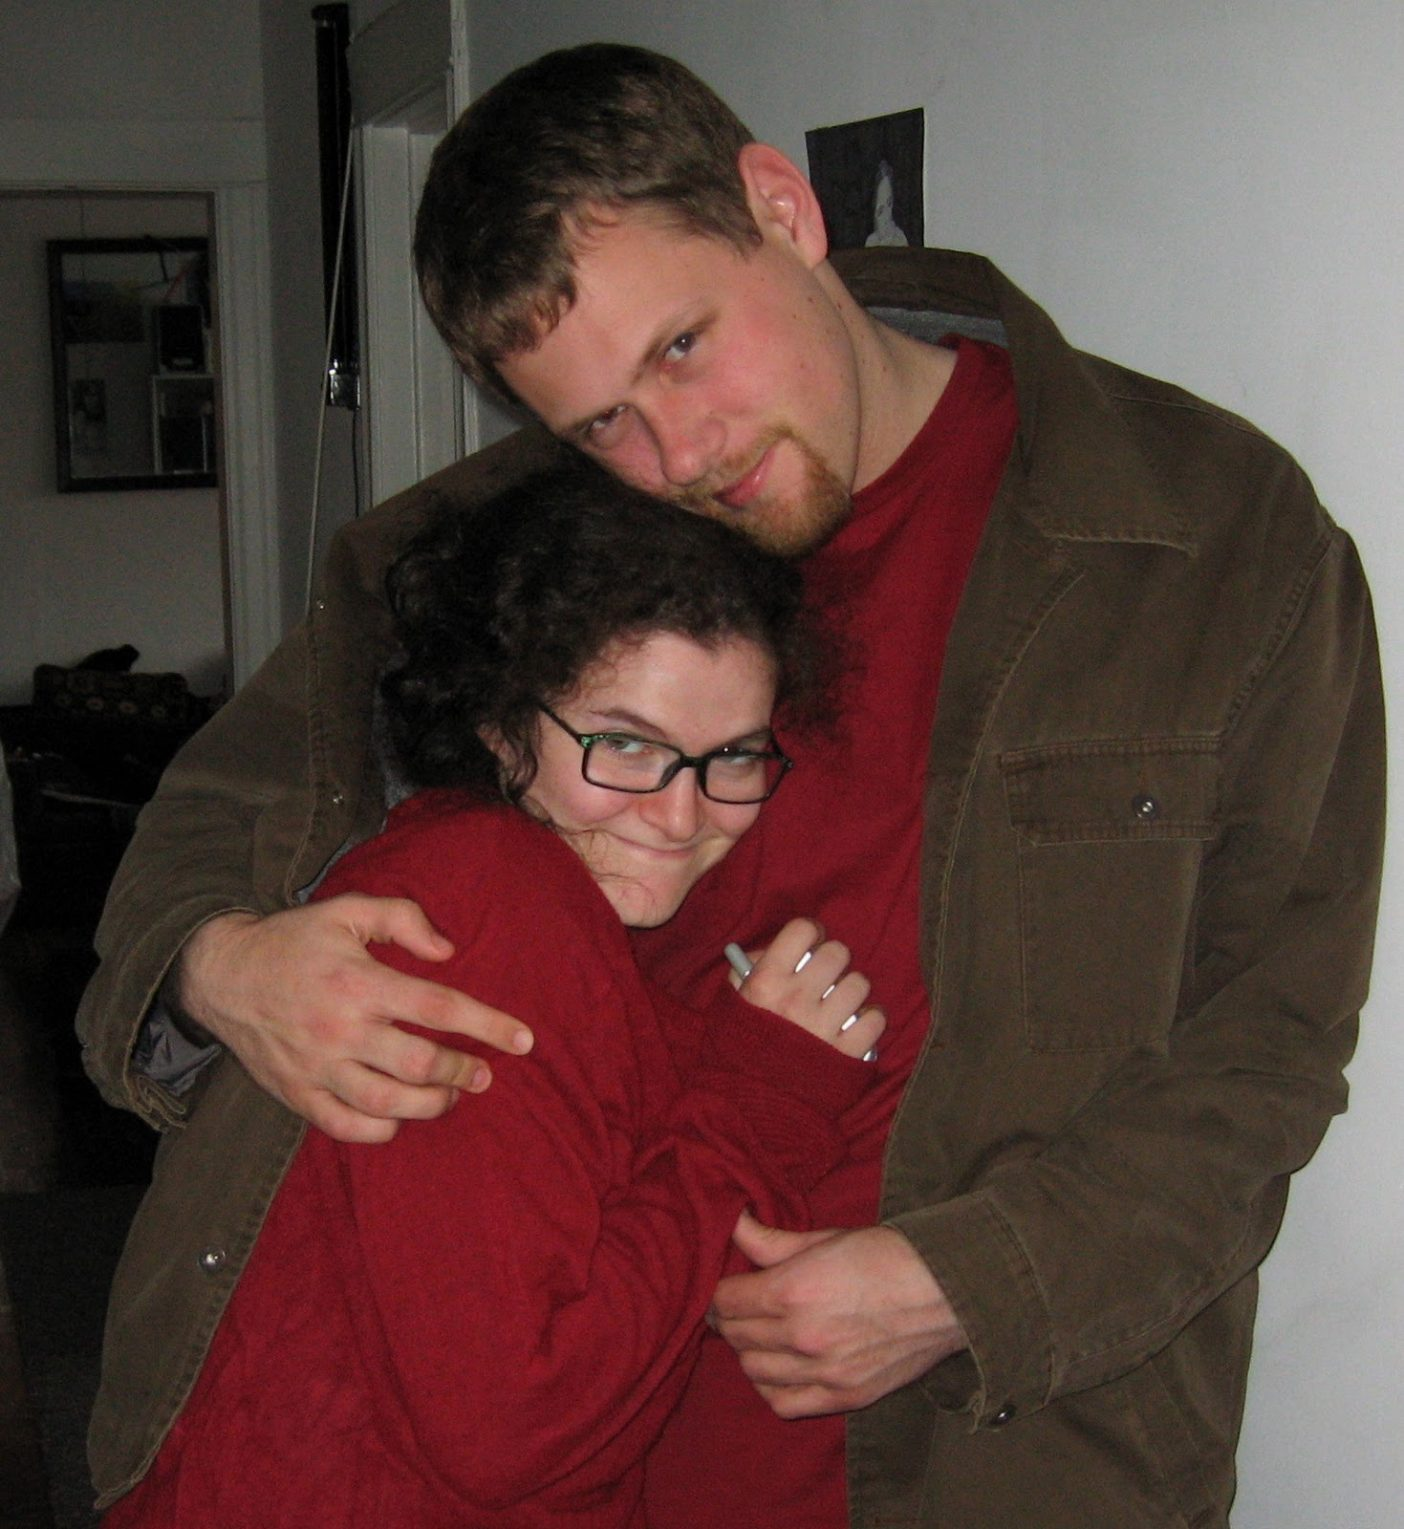 Me and M in 2006